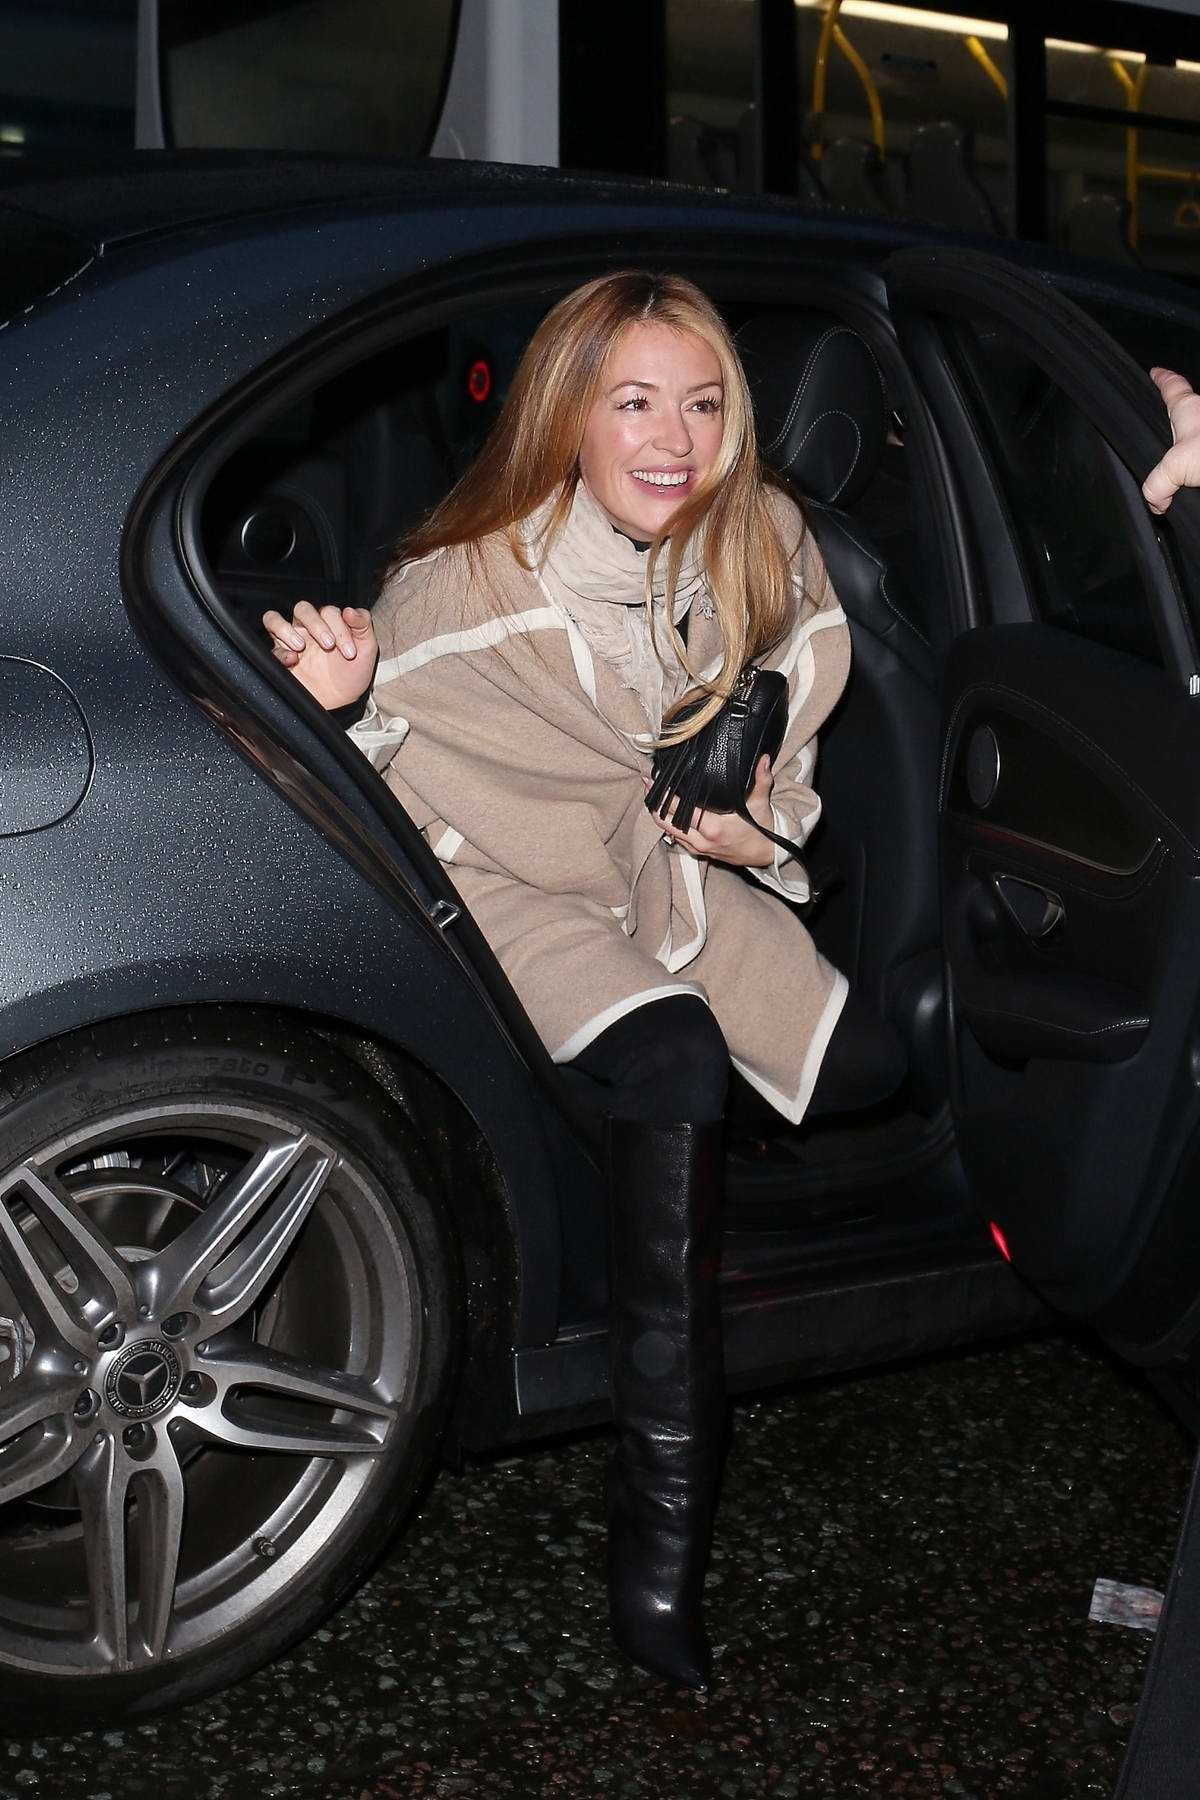 Cat Deeley arrives at BBC broadcasting house in London